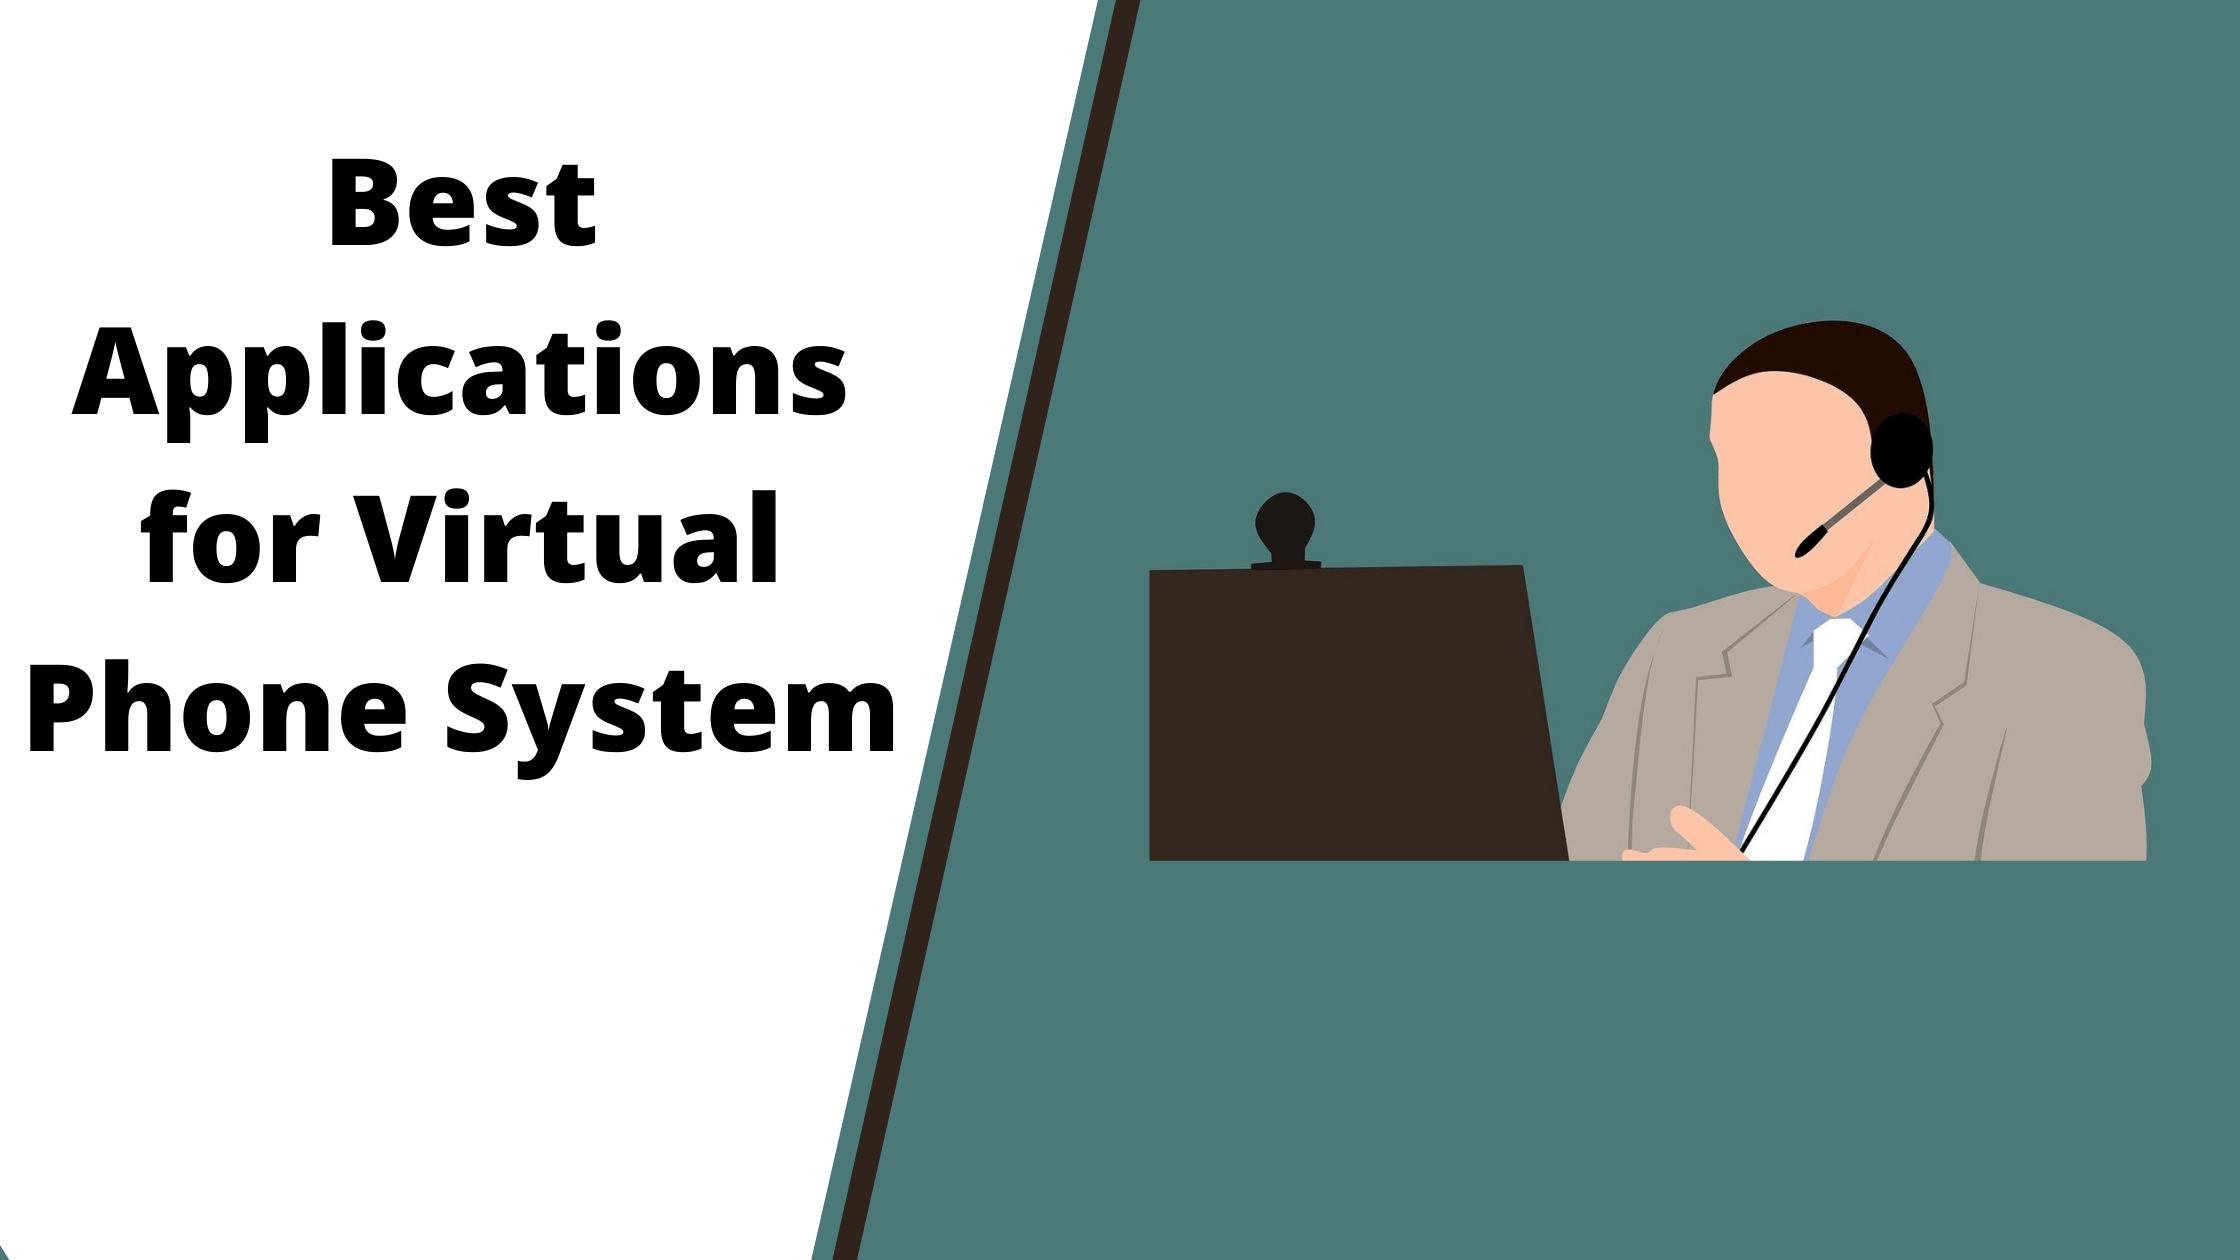 Virtual Phone System Applications